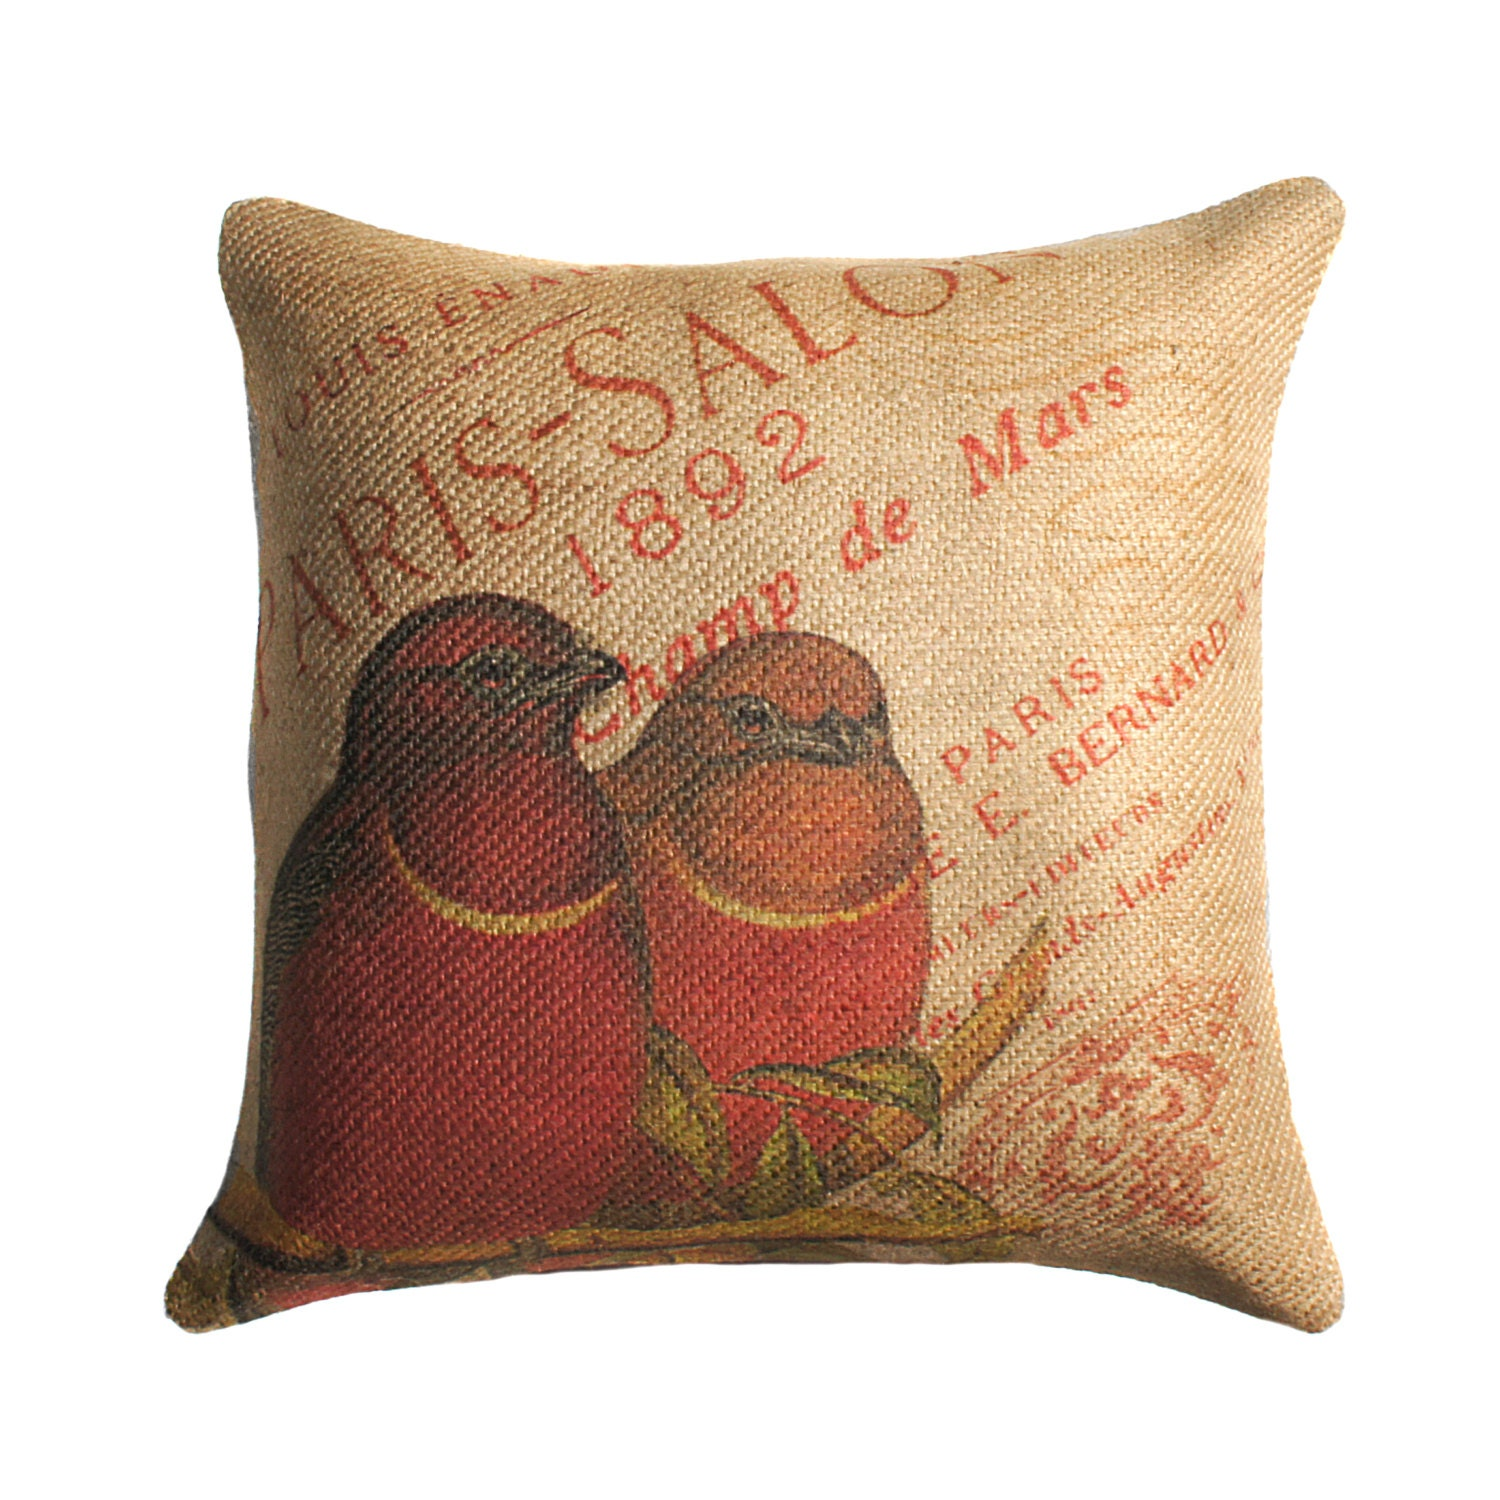 Throw Pillow In French : Burlap Pillow of Red Birds French Throw Pillow Cushion